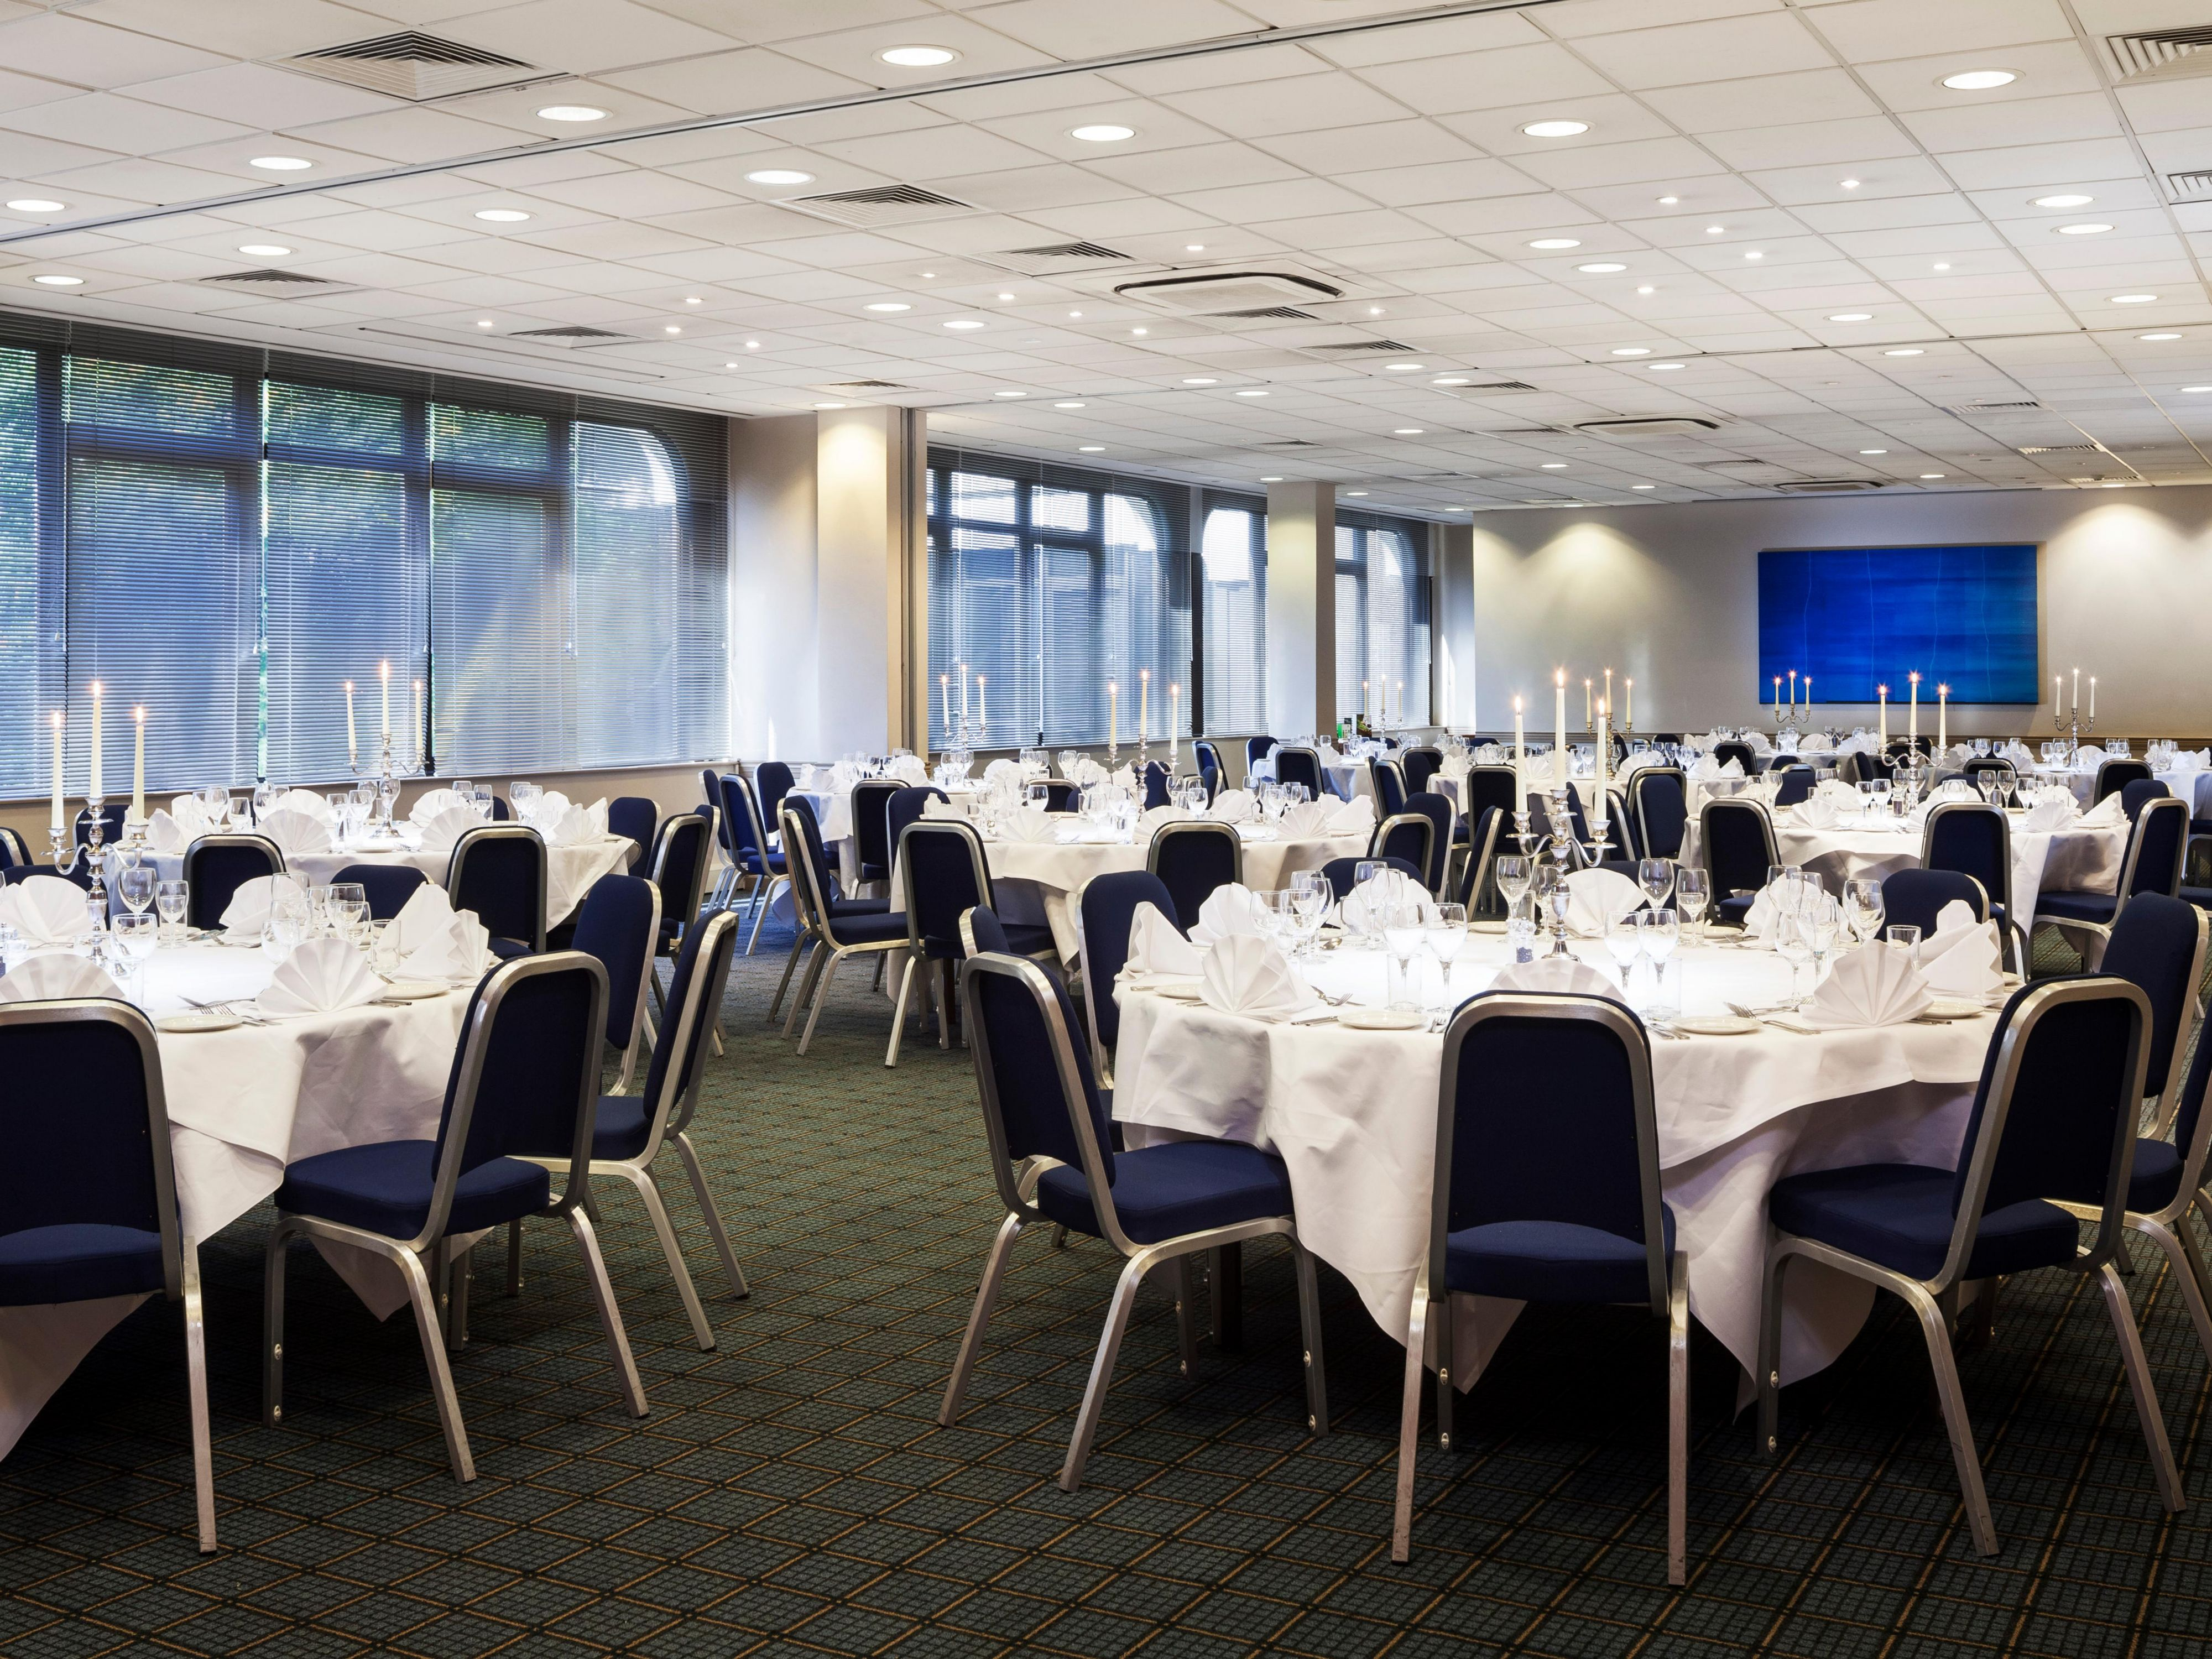 Banquet Room - Ideal for the Weddings and Birthdays